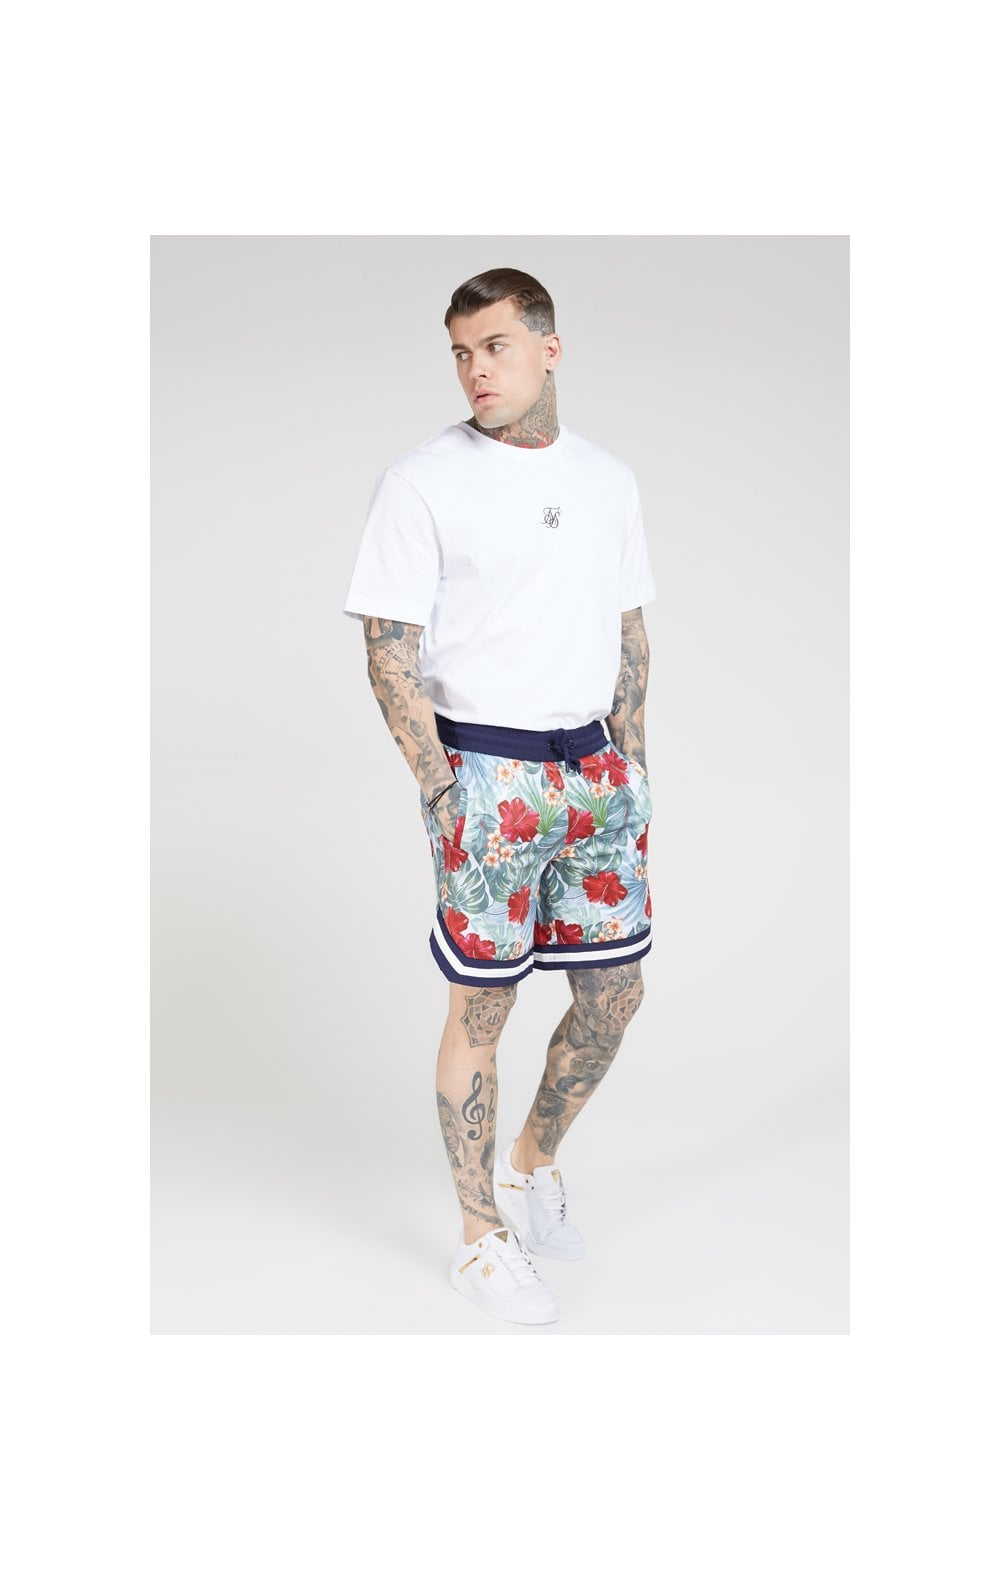 SikSilk 70's Floral Basketball Shorts - Navy & White (3)